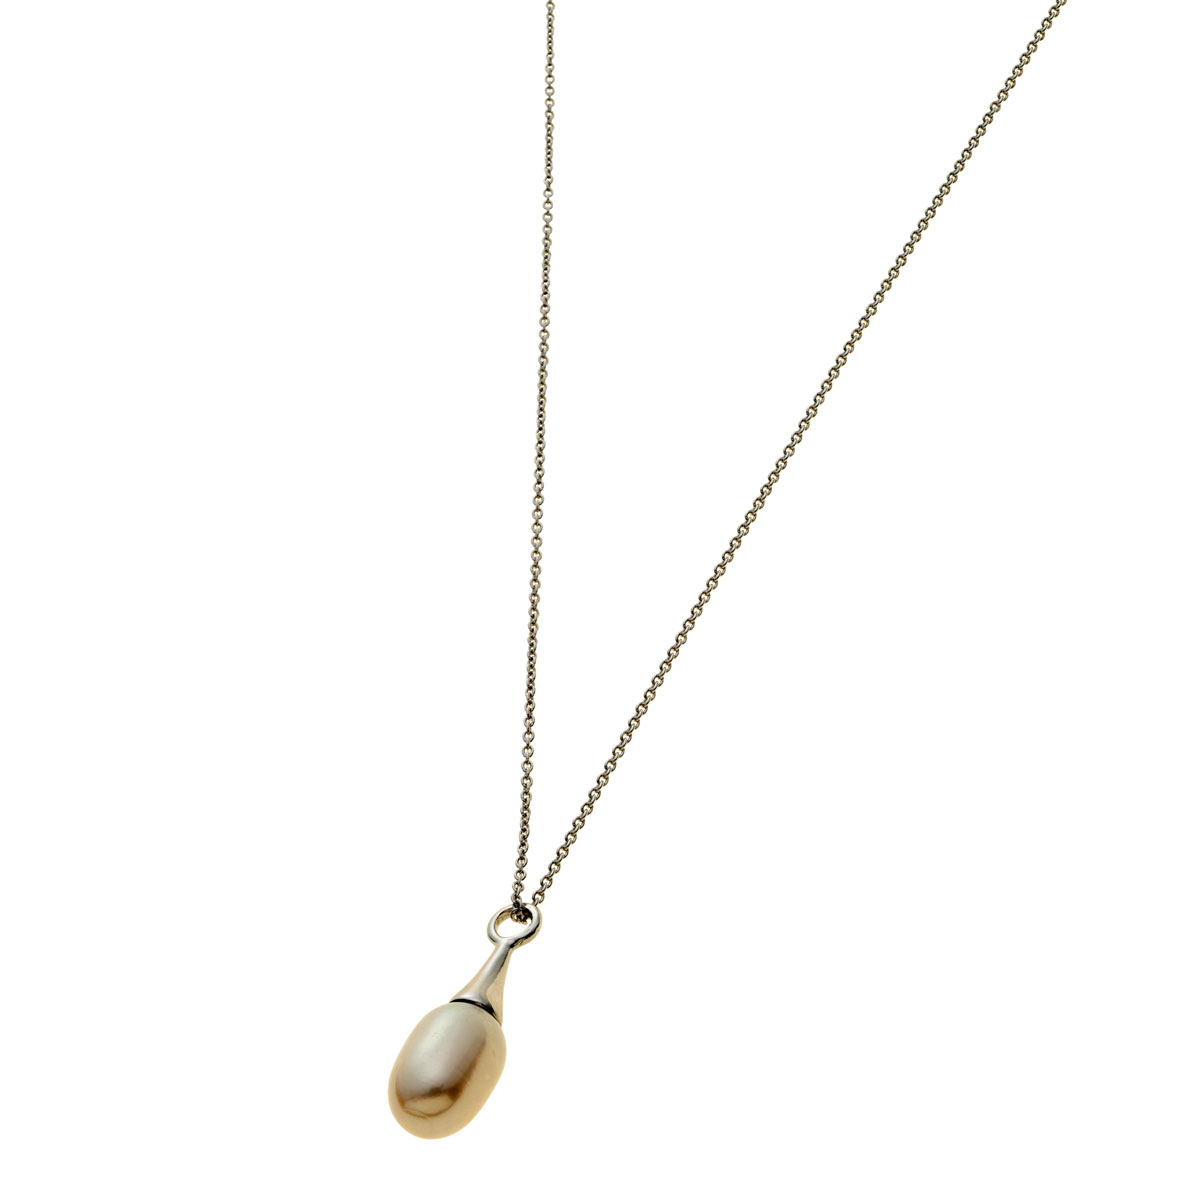 Belleek Living Jewelry Oyster Necklace